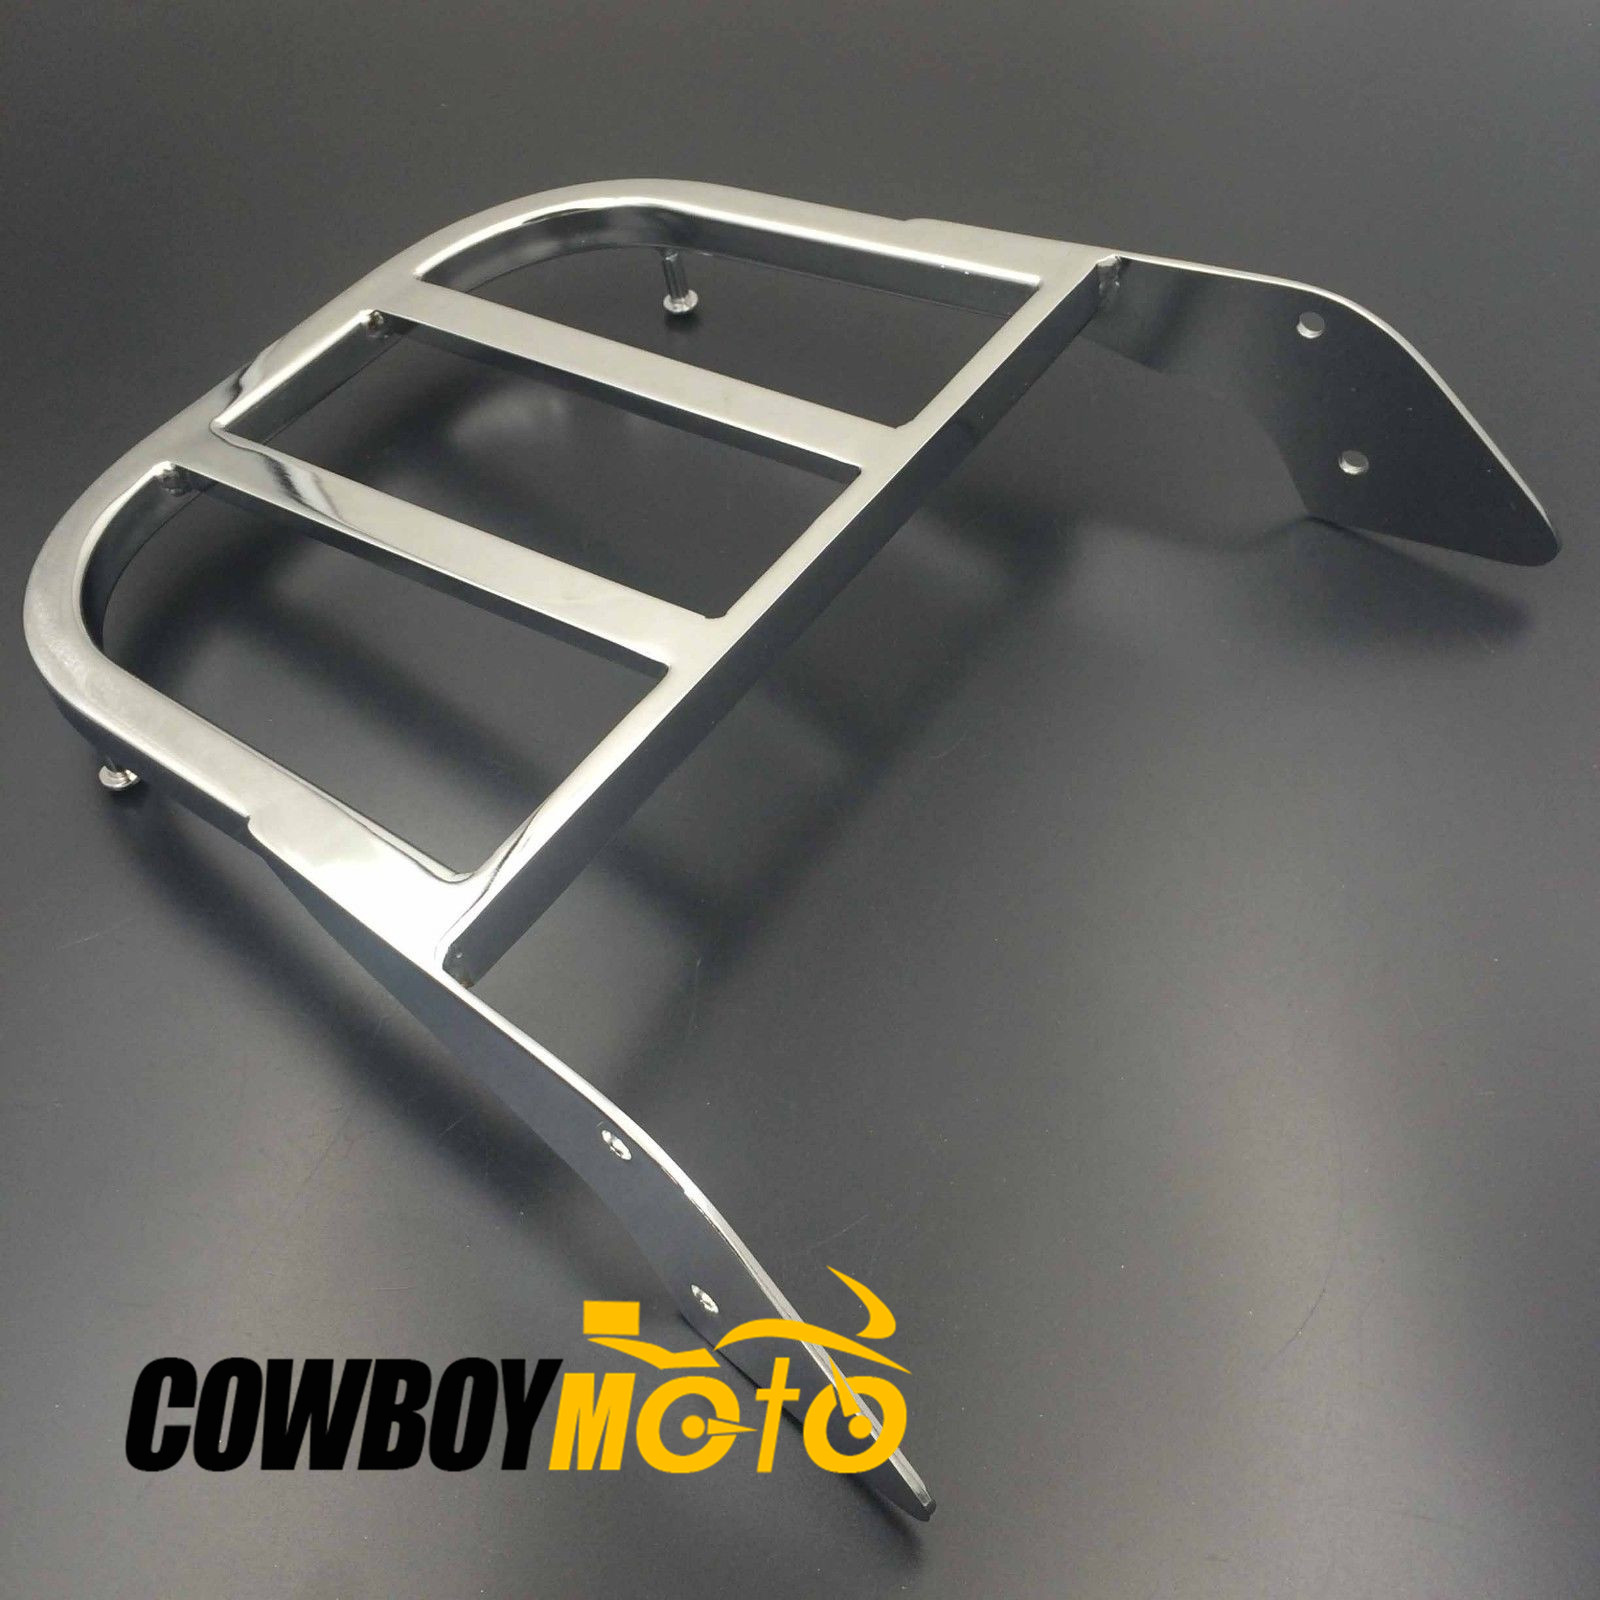 Motorcycle Sissy Bar Luggage Rack Carrier For Honda ACE 750 Spirit Aeri 1100 VLX 600 Magna Tourer Chrome partol black car roof rack cross bars roof luggage carrier cargo boxes bike rack 45kg 100lbs for honda pilot 2013 2014 2015